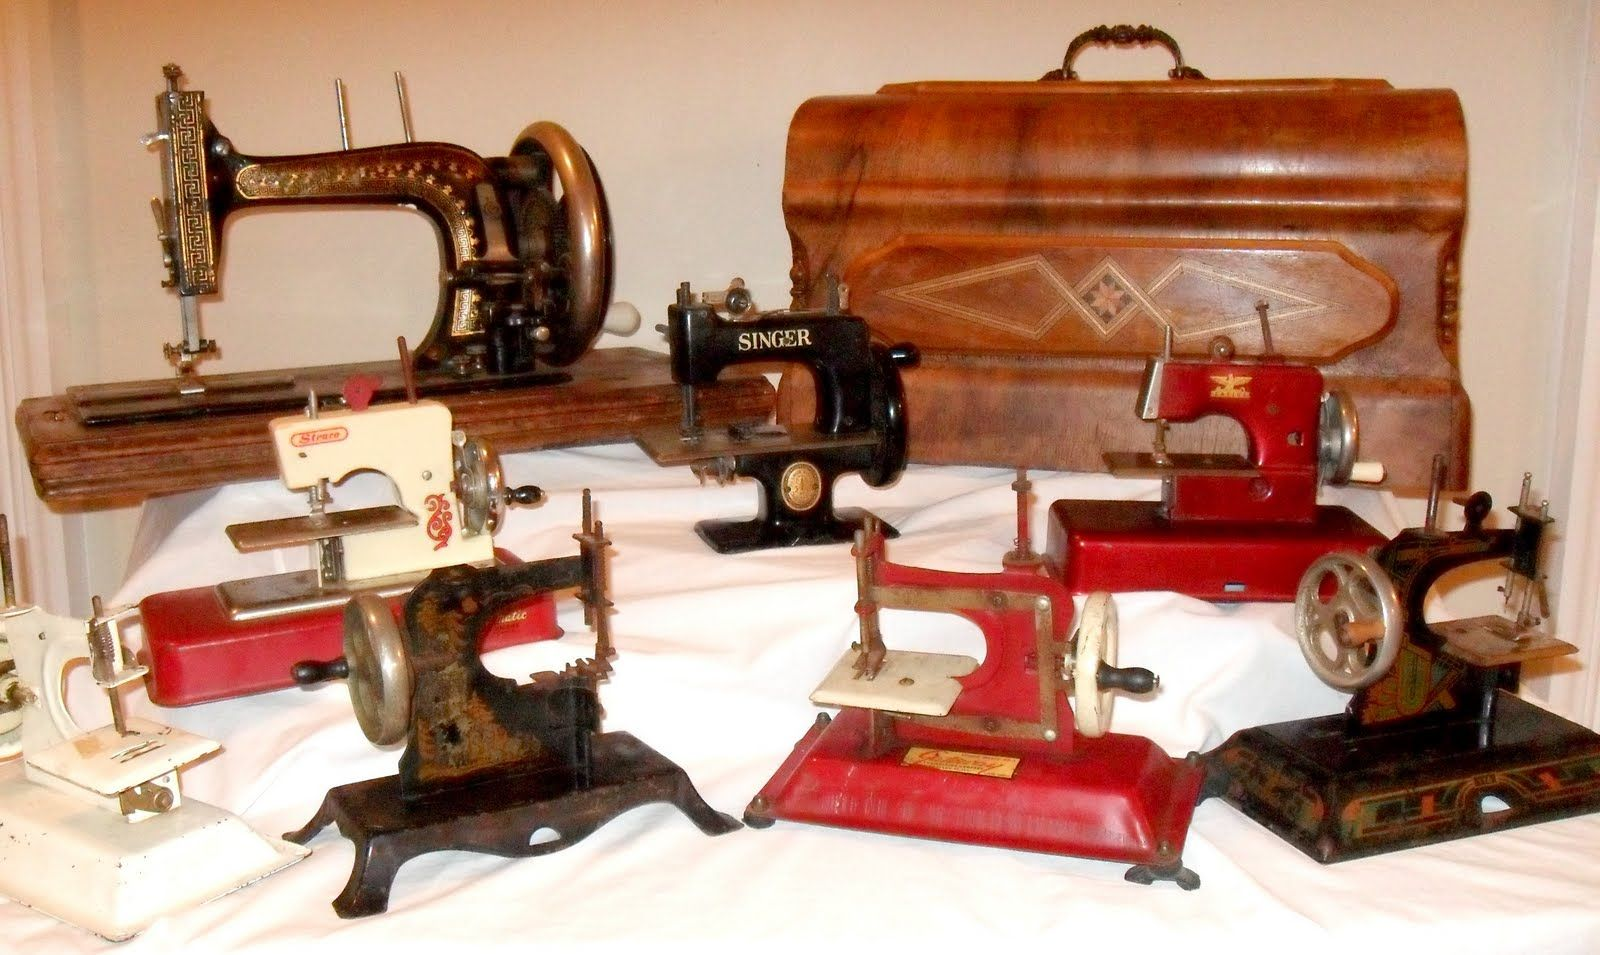 A display of variety sewing machines.